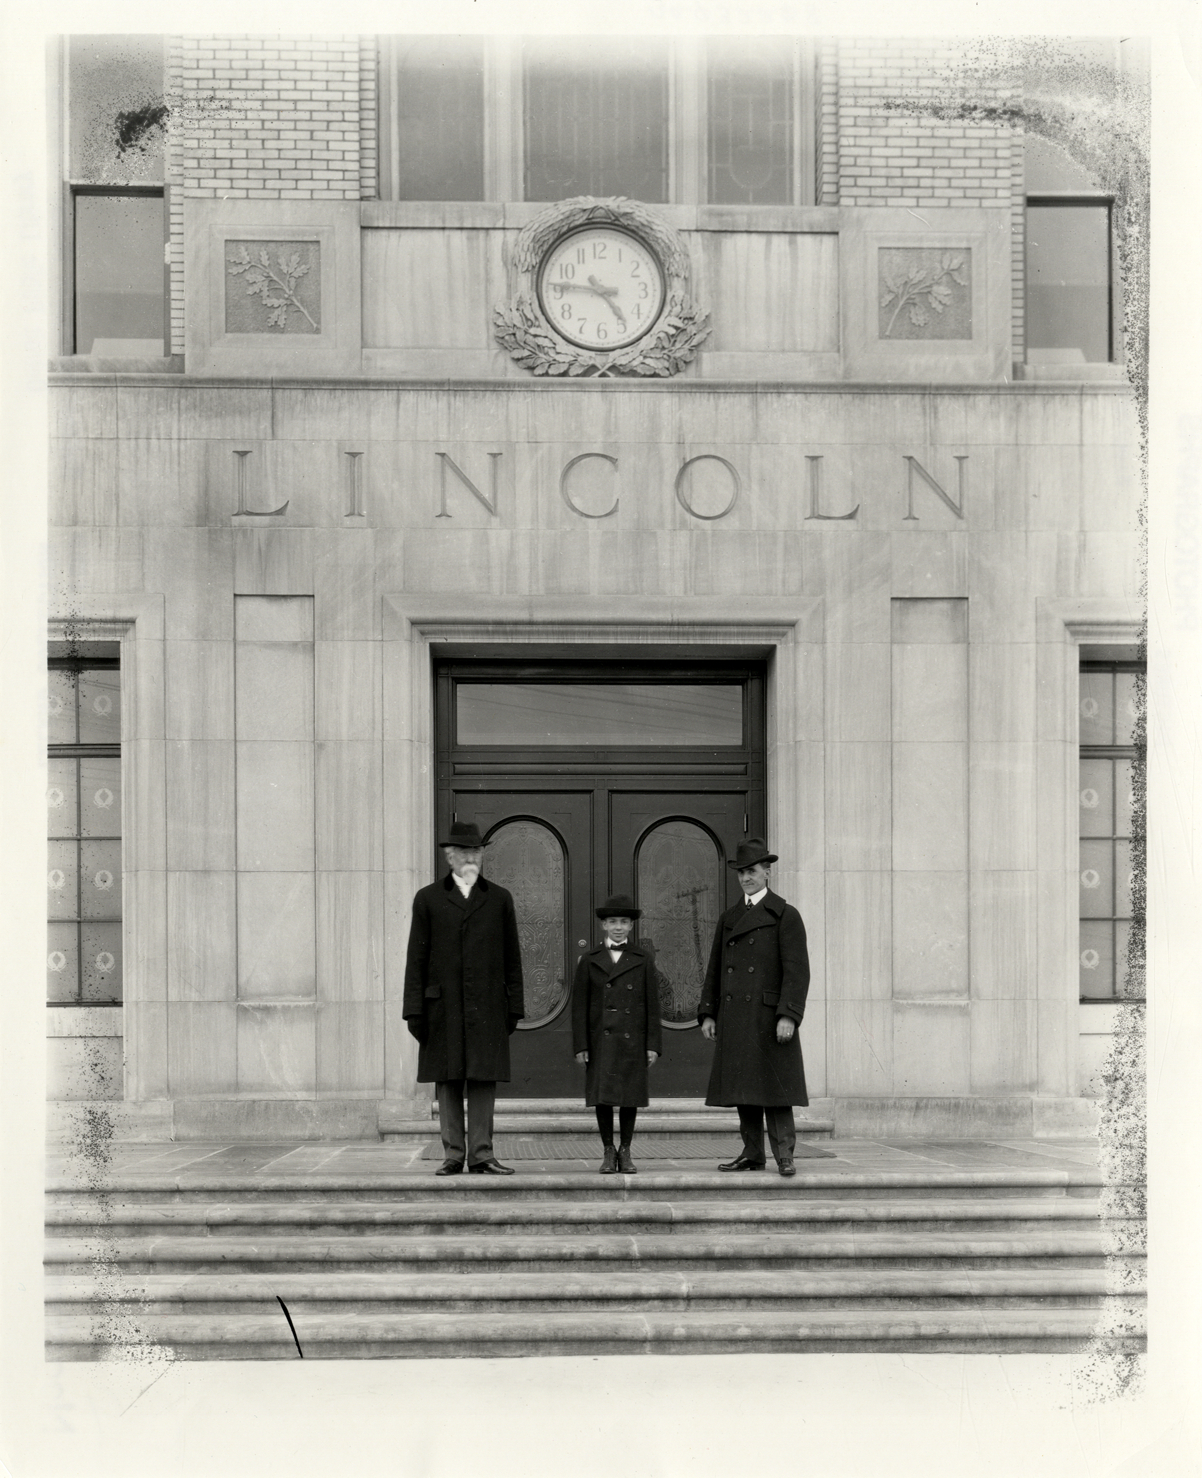 henry leland lincoln factory